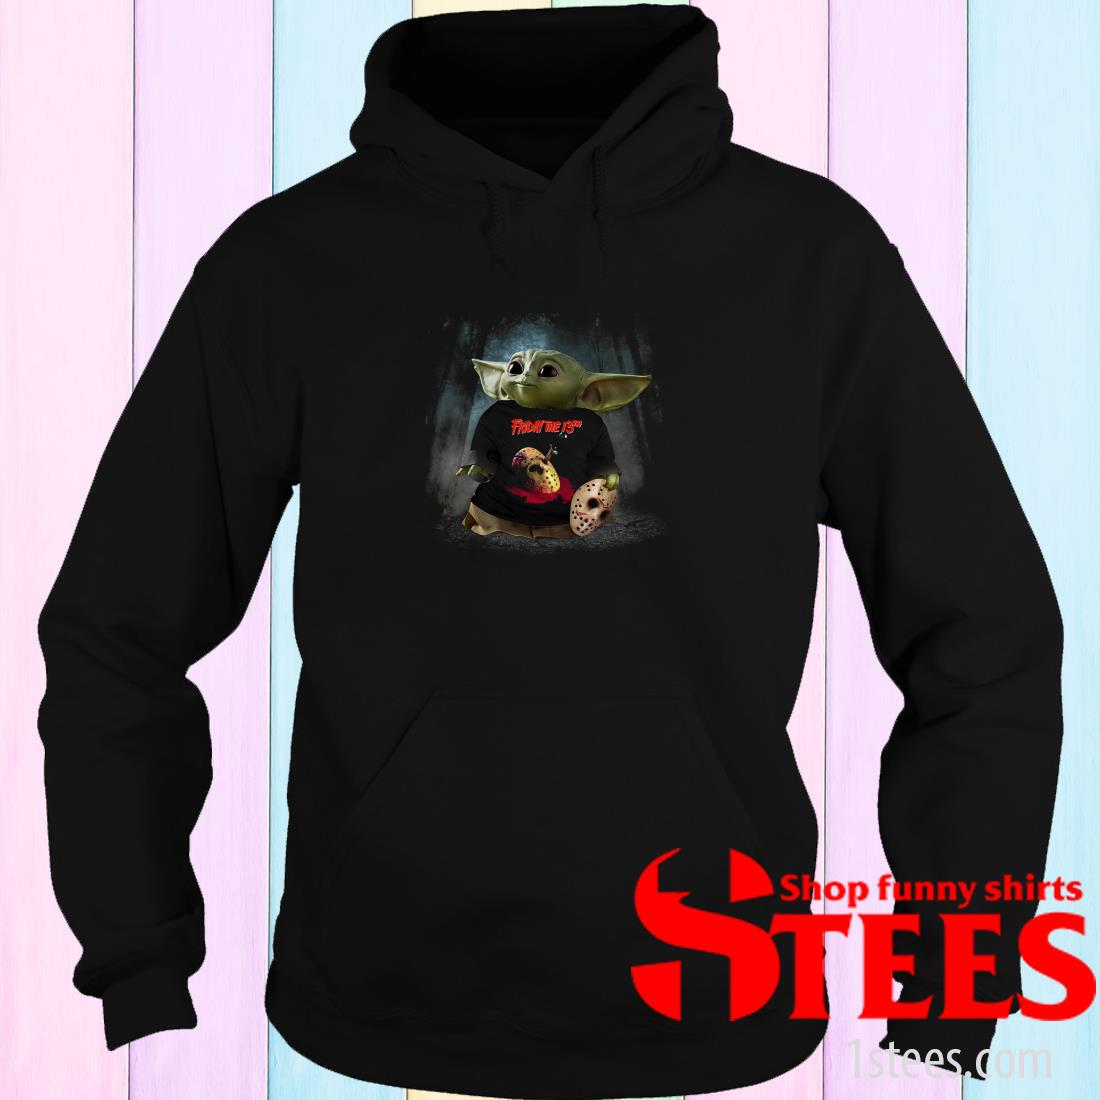 Star Wars Baby Yoda Friday The 13Th Hoodie